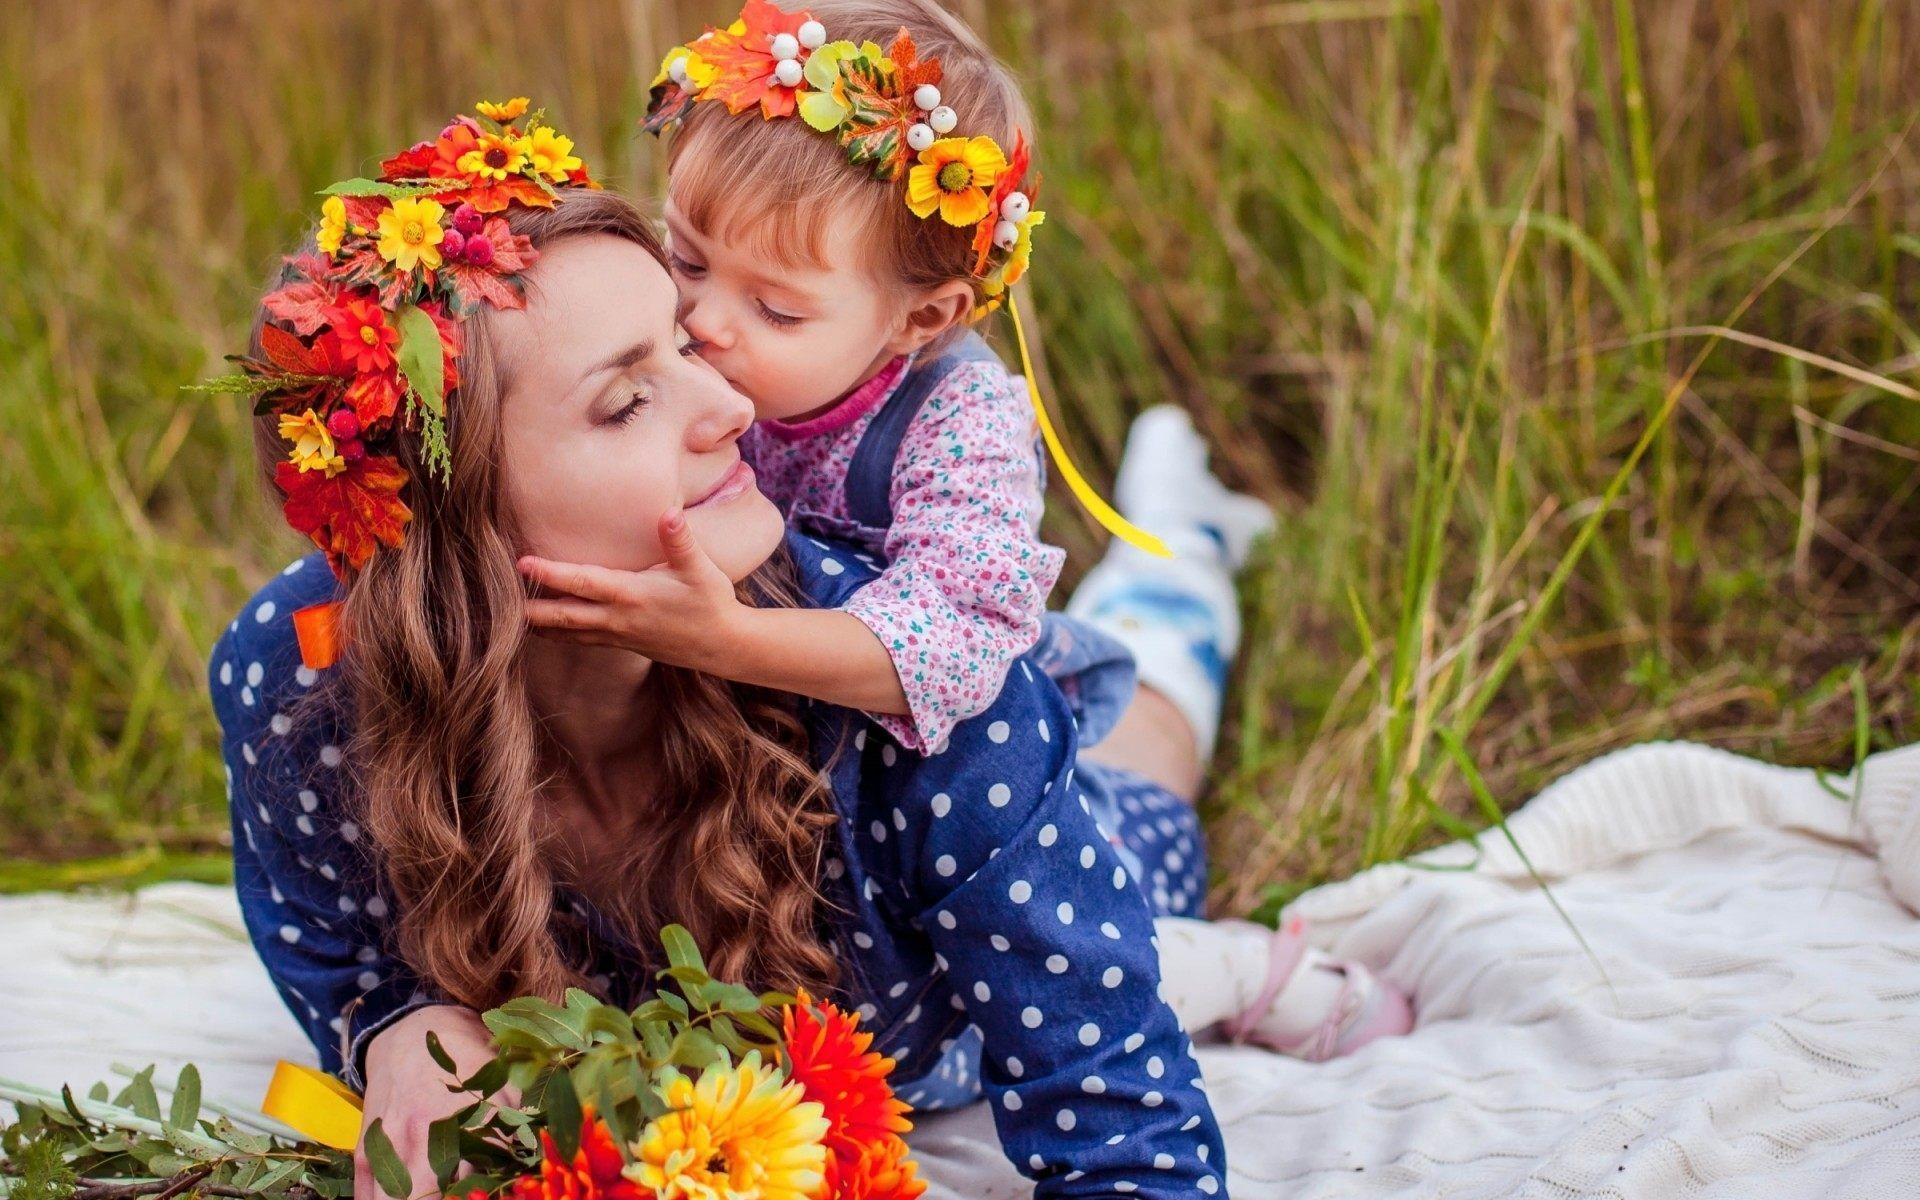 Mother Daughter Love Wallpaper Download Of Cute Family